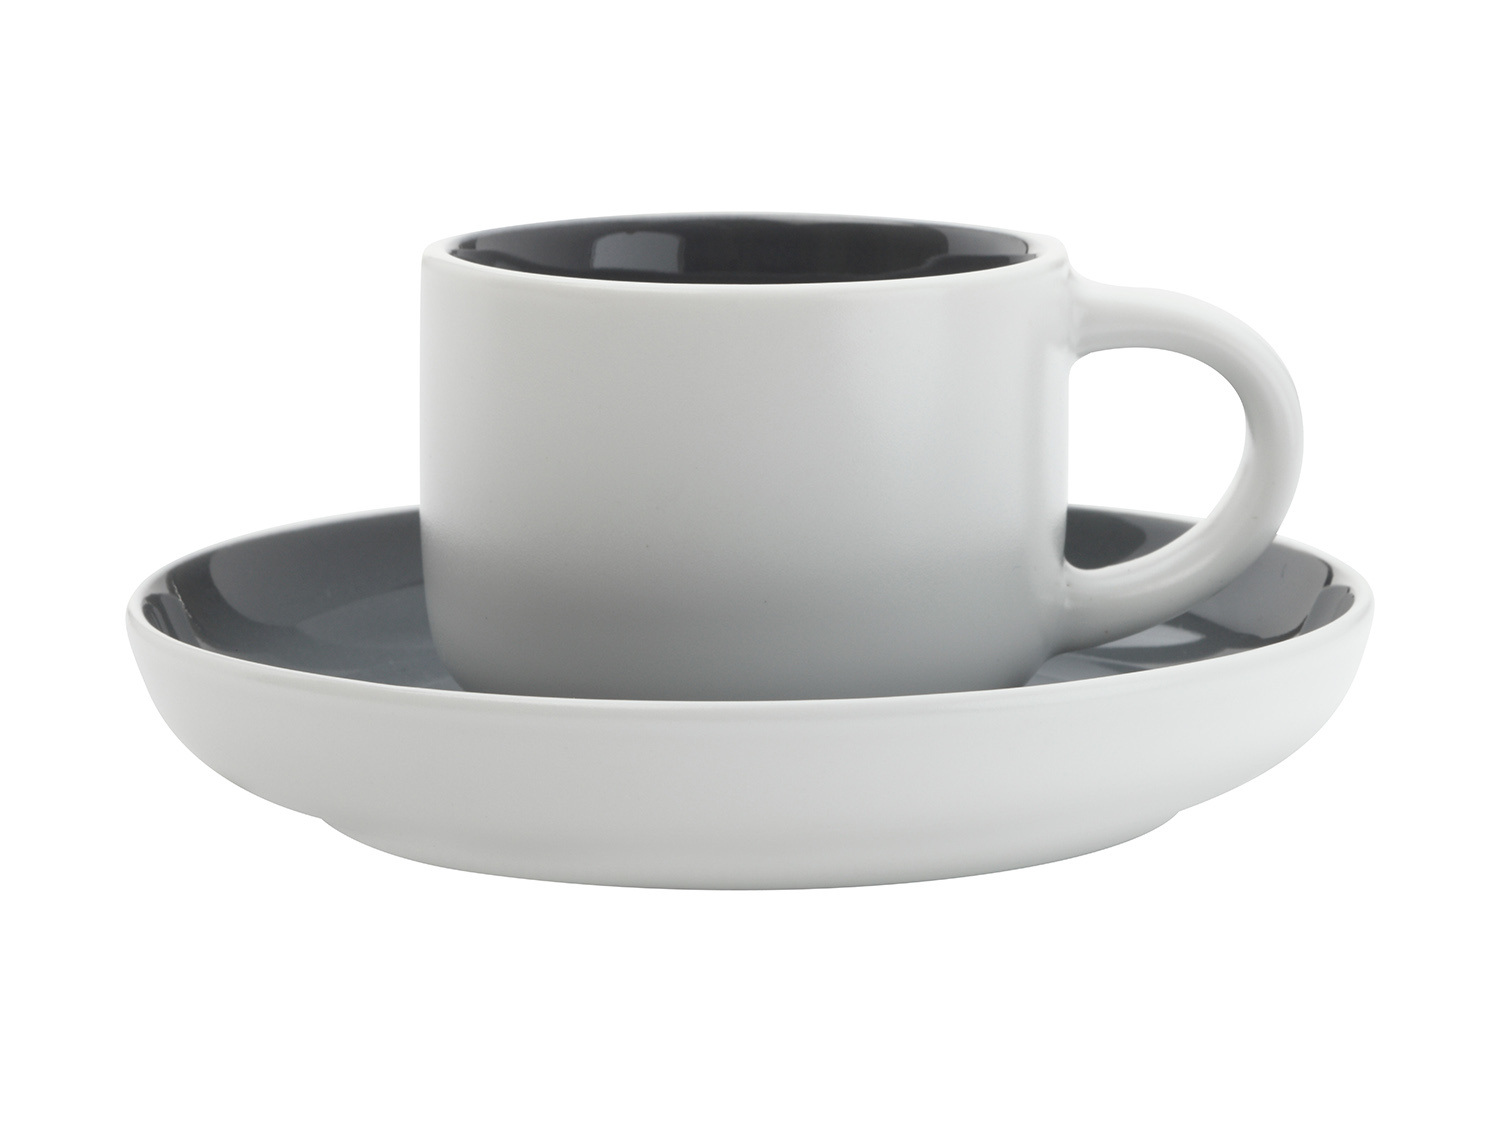 Maxwell & Williams Tint Demi 100Ml Cup And Saucer Charcoal